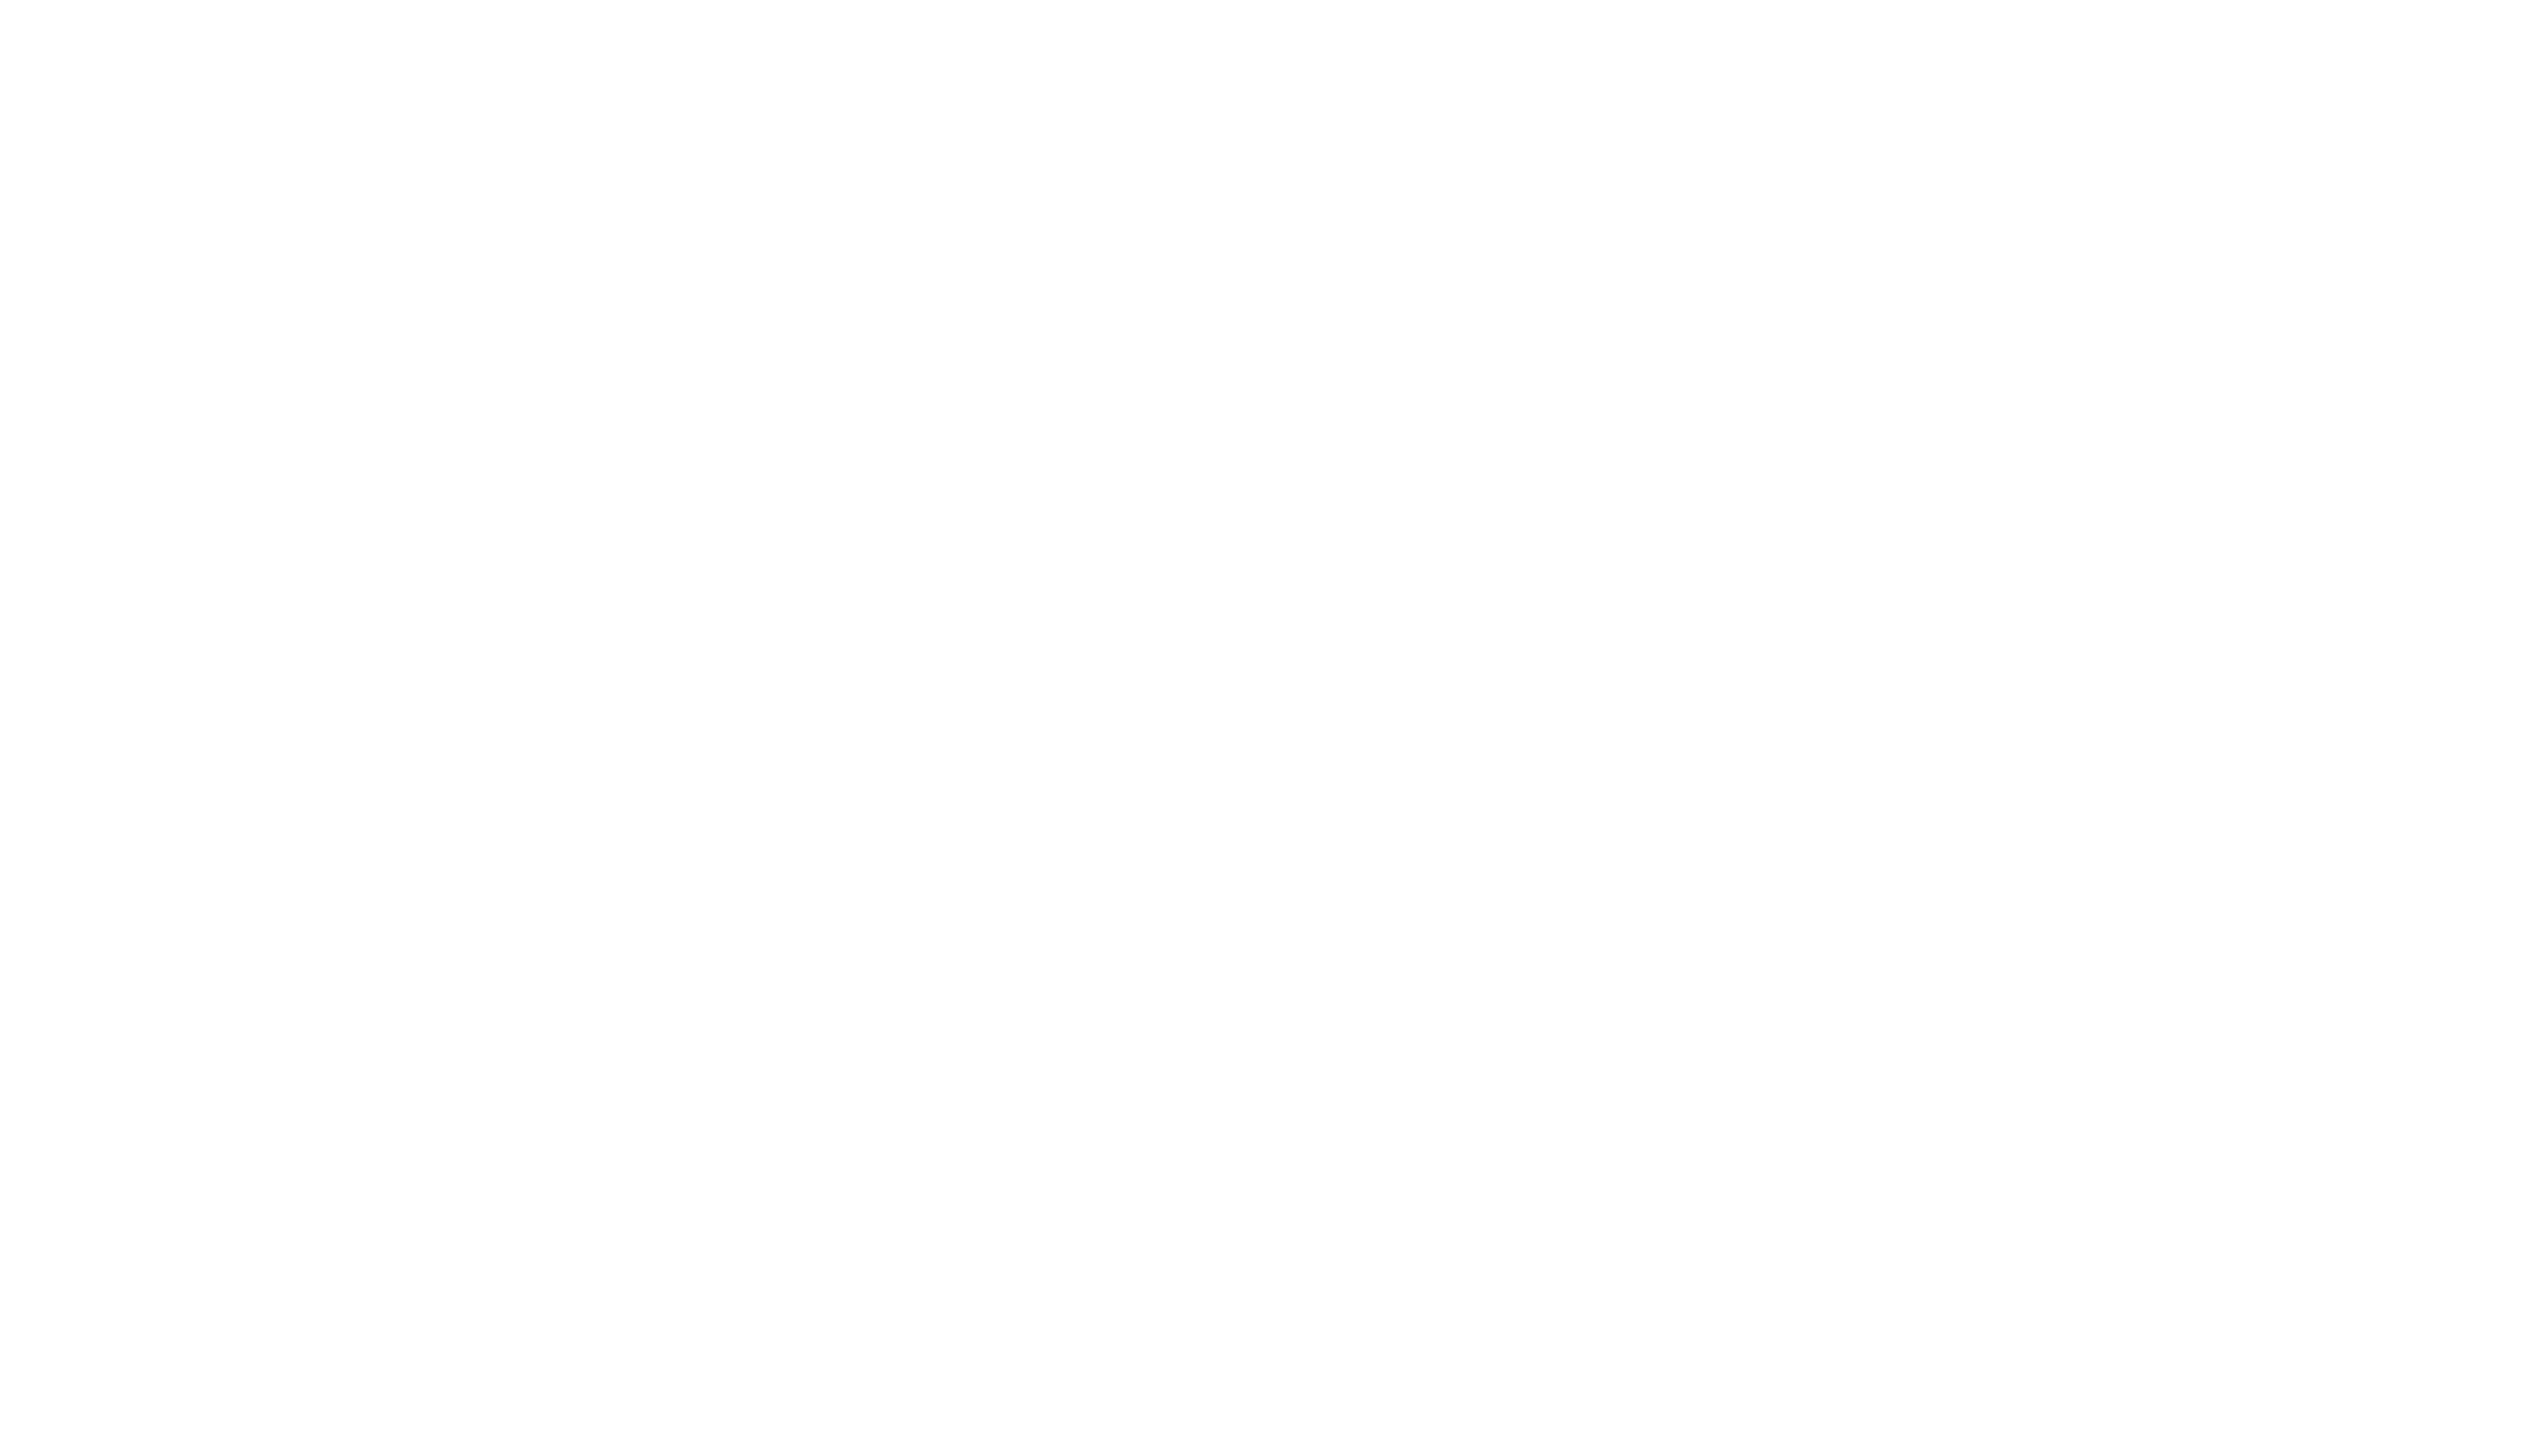 Visit Night church this Summer